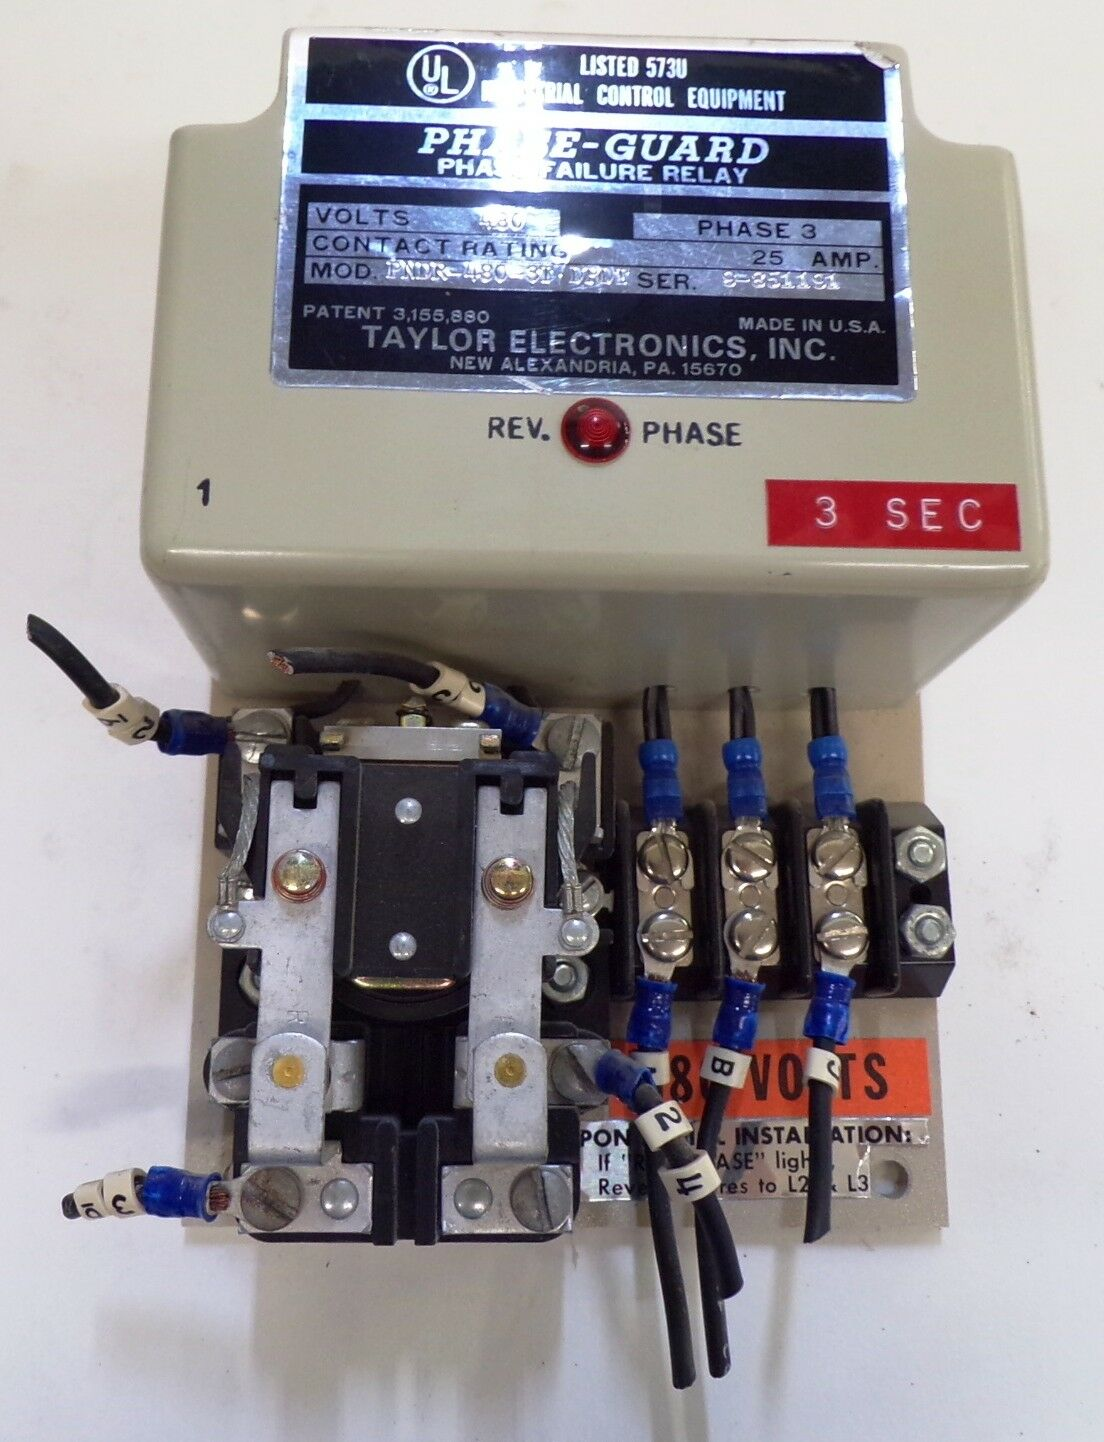 Taylor Pndr 480 3t Dpdt 3 Phase Guard Failure Relay 480v Ac 30a Amp Solid State Fail Closed D292707 Ebay